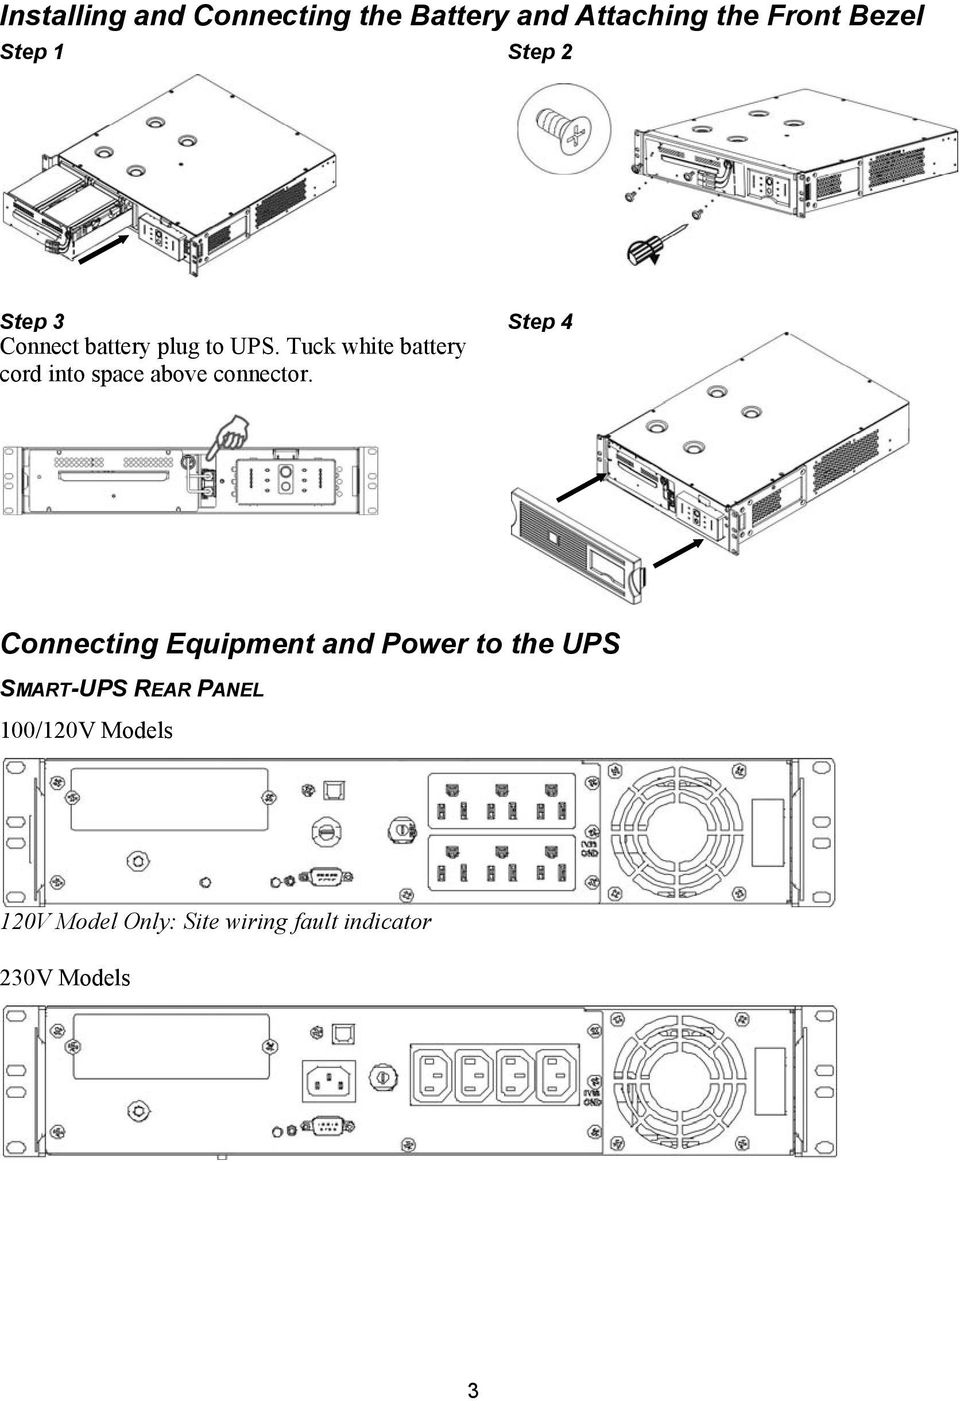 User Manual Smart Ups Uninterruptible Power Supply 750 1000 1500 Battery Wiring Diagram Two Tuck White Cord Into Space Above Connector